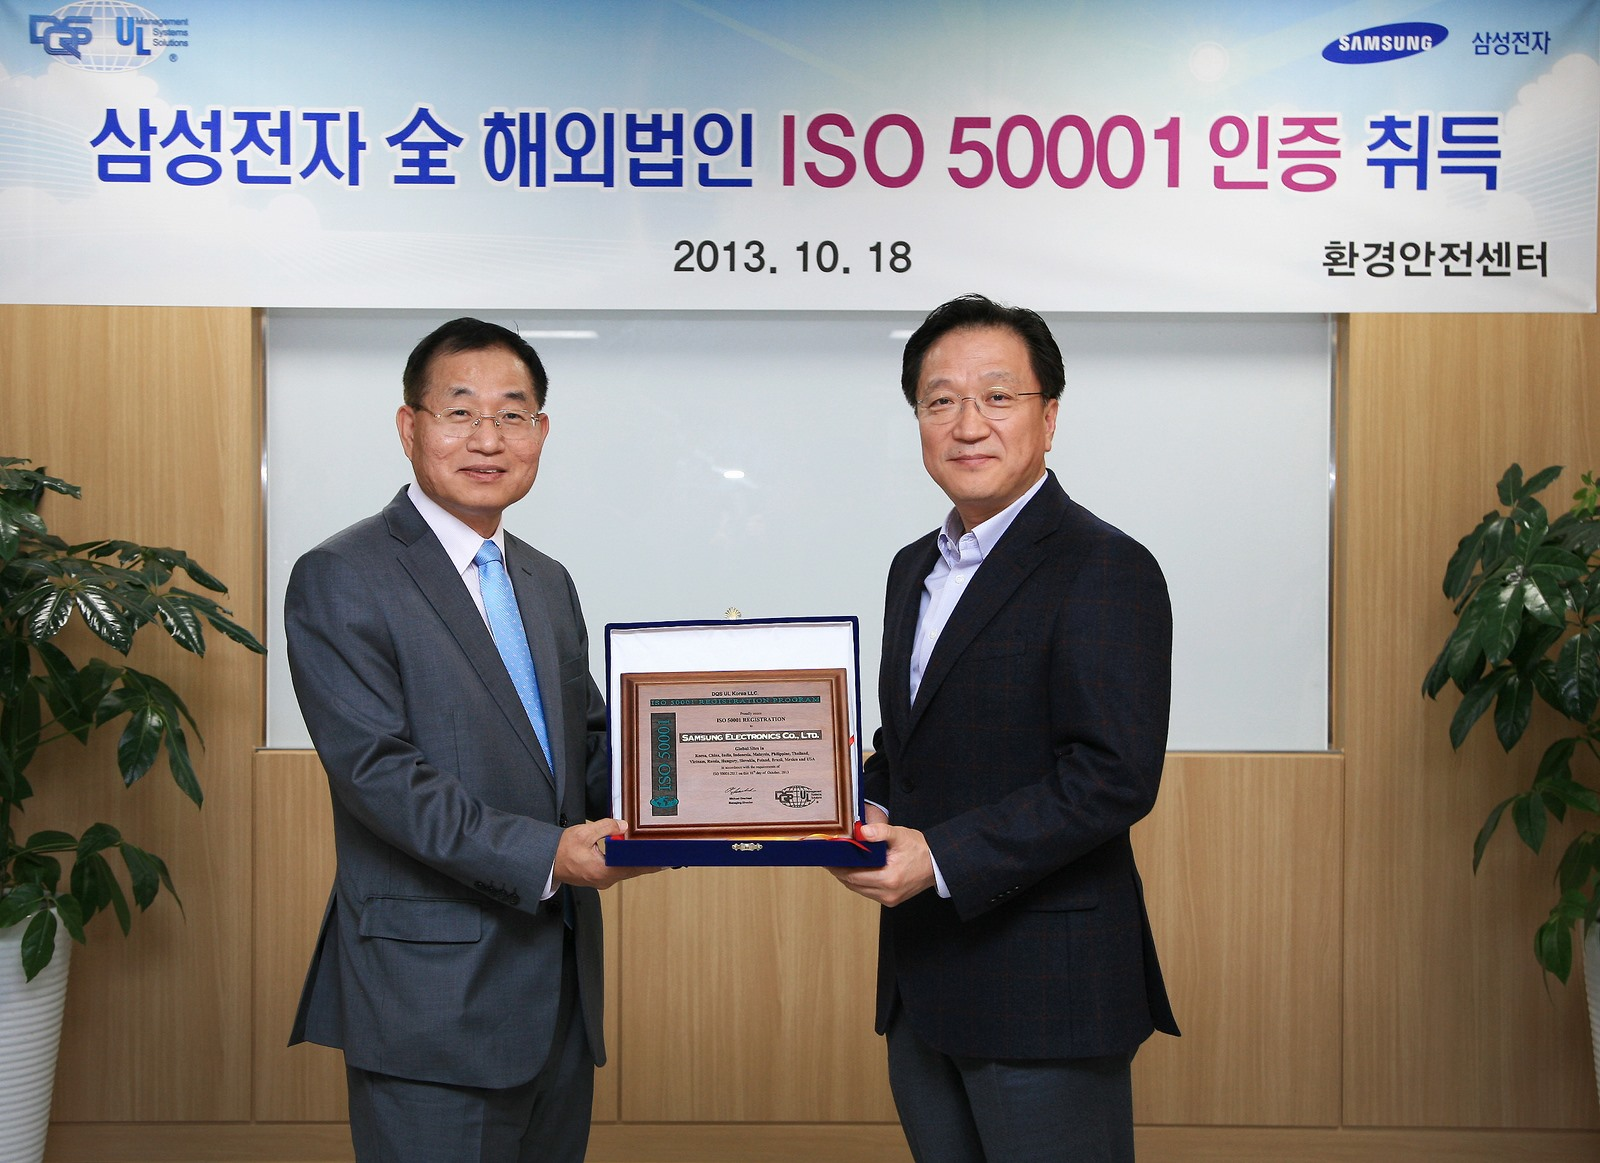 Samsung Awarde ISO50001 Certification Across All Business Sites 1